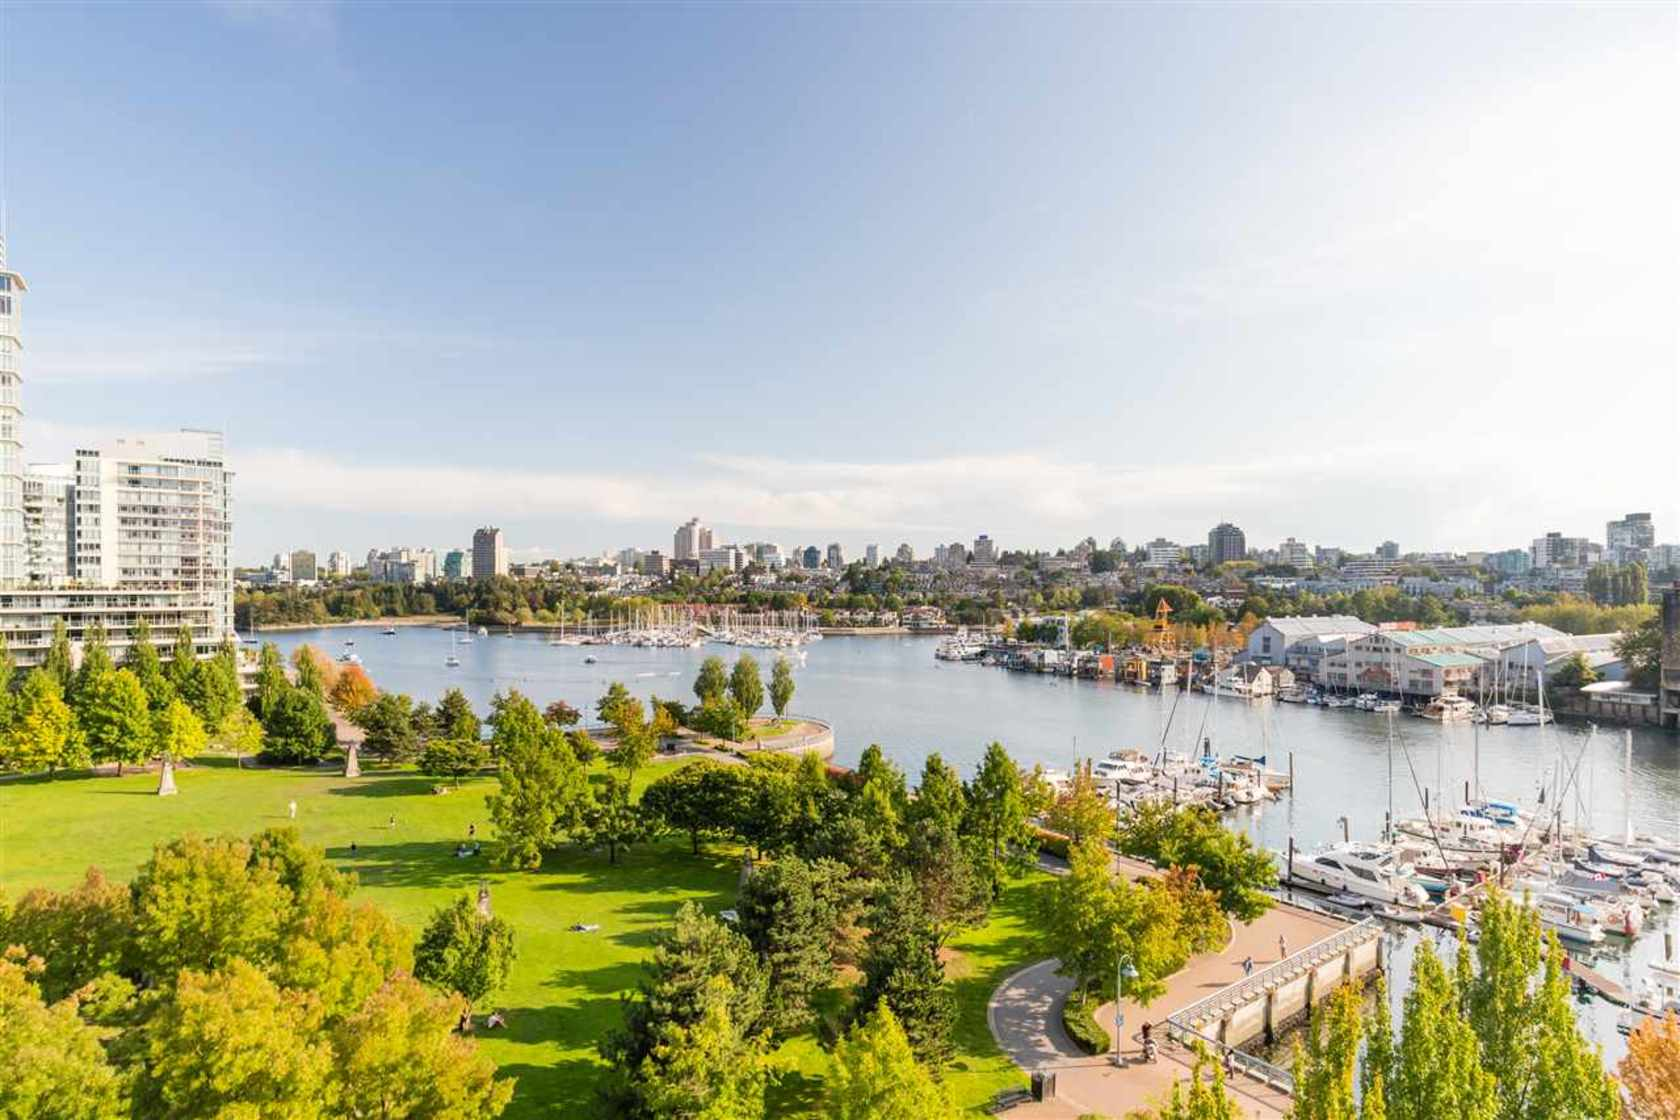 262434861-3-1 at 807 - 633 Kinghorne Mews, Beach Crescent (Yaletown), Vancouver West